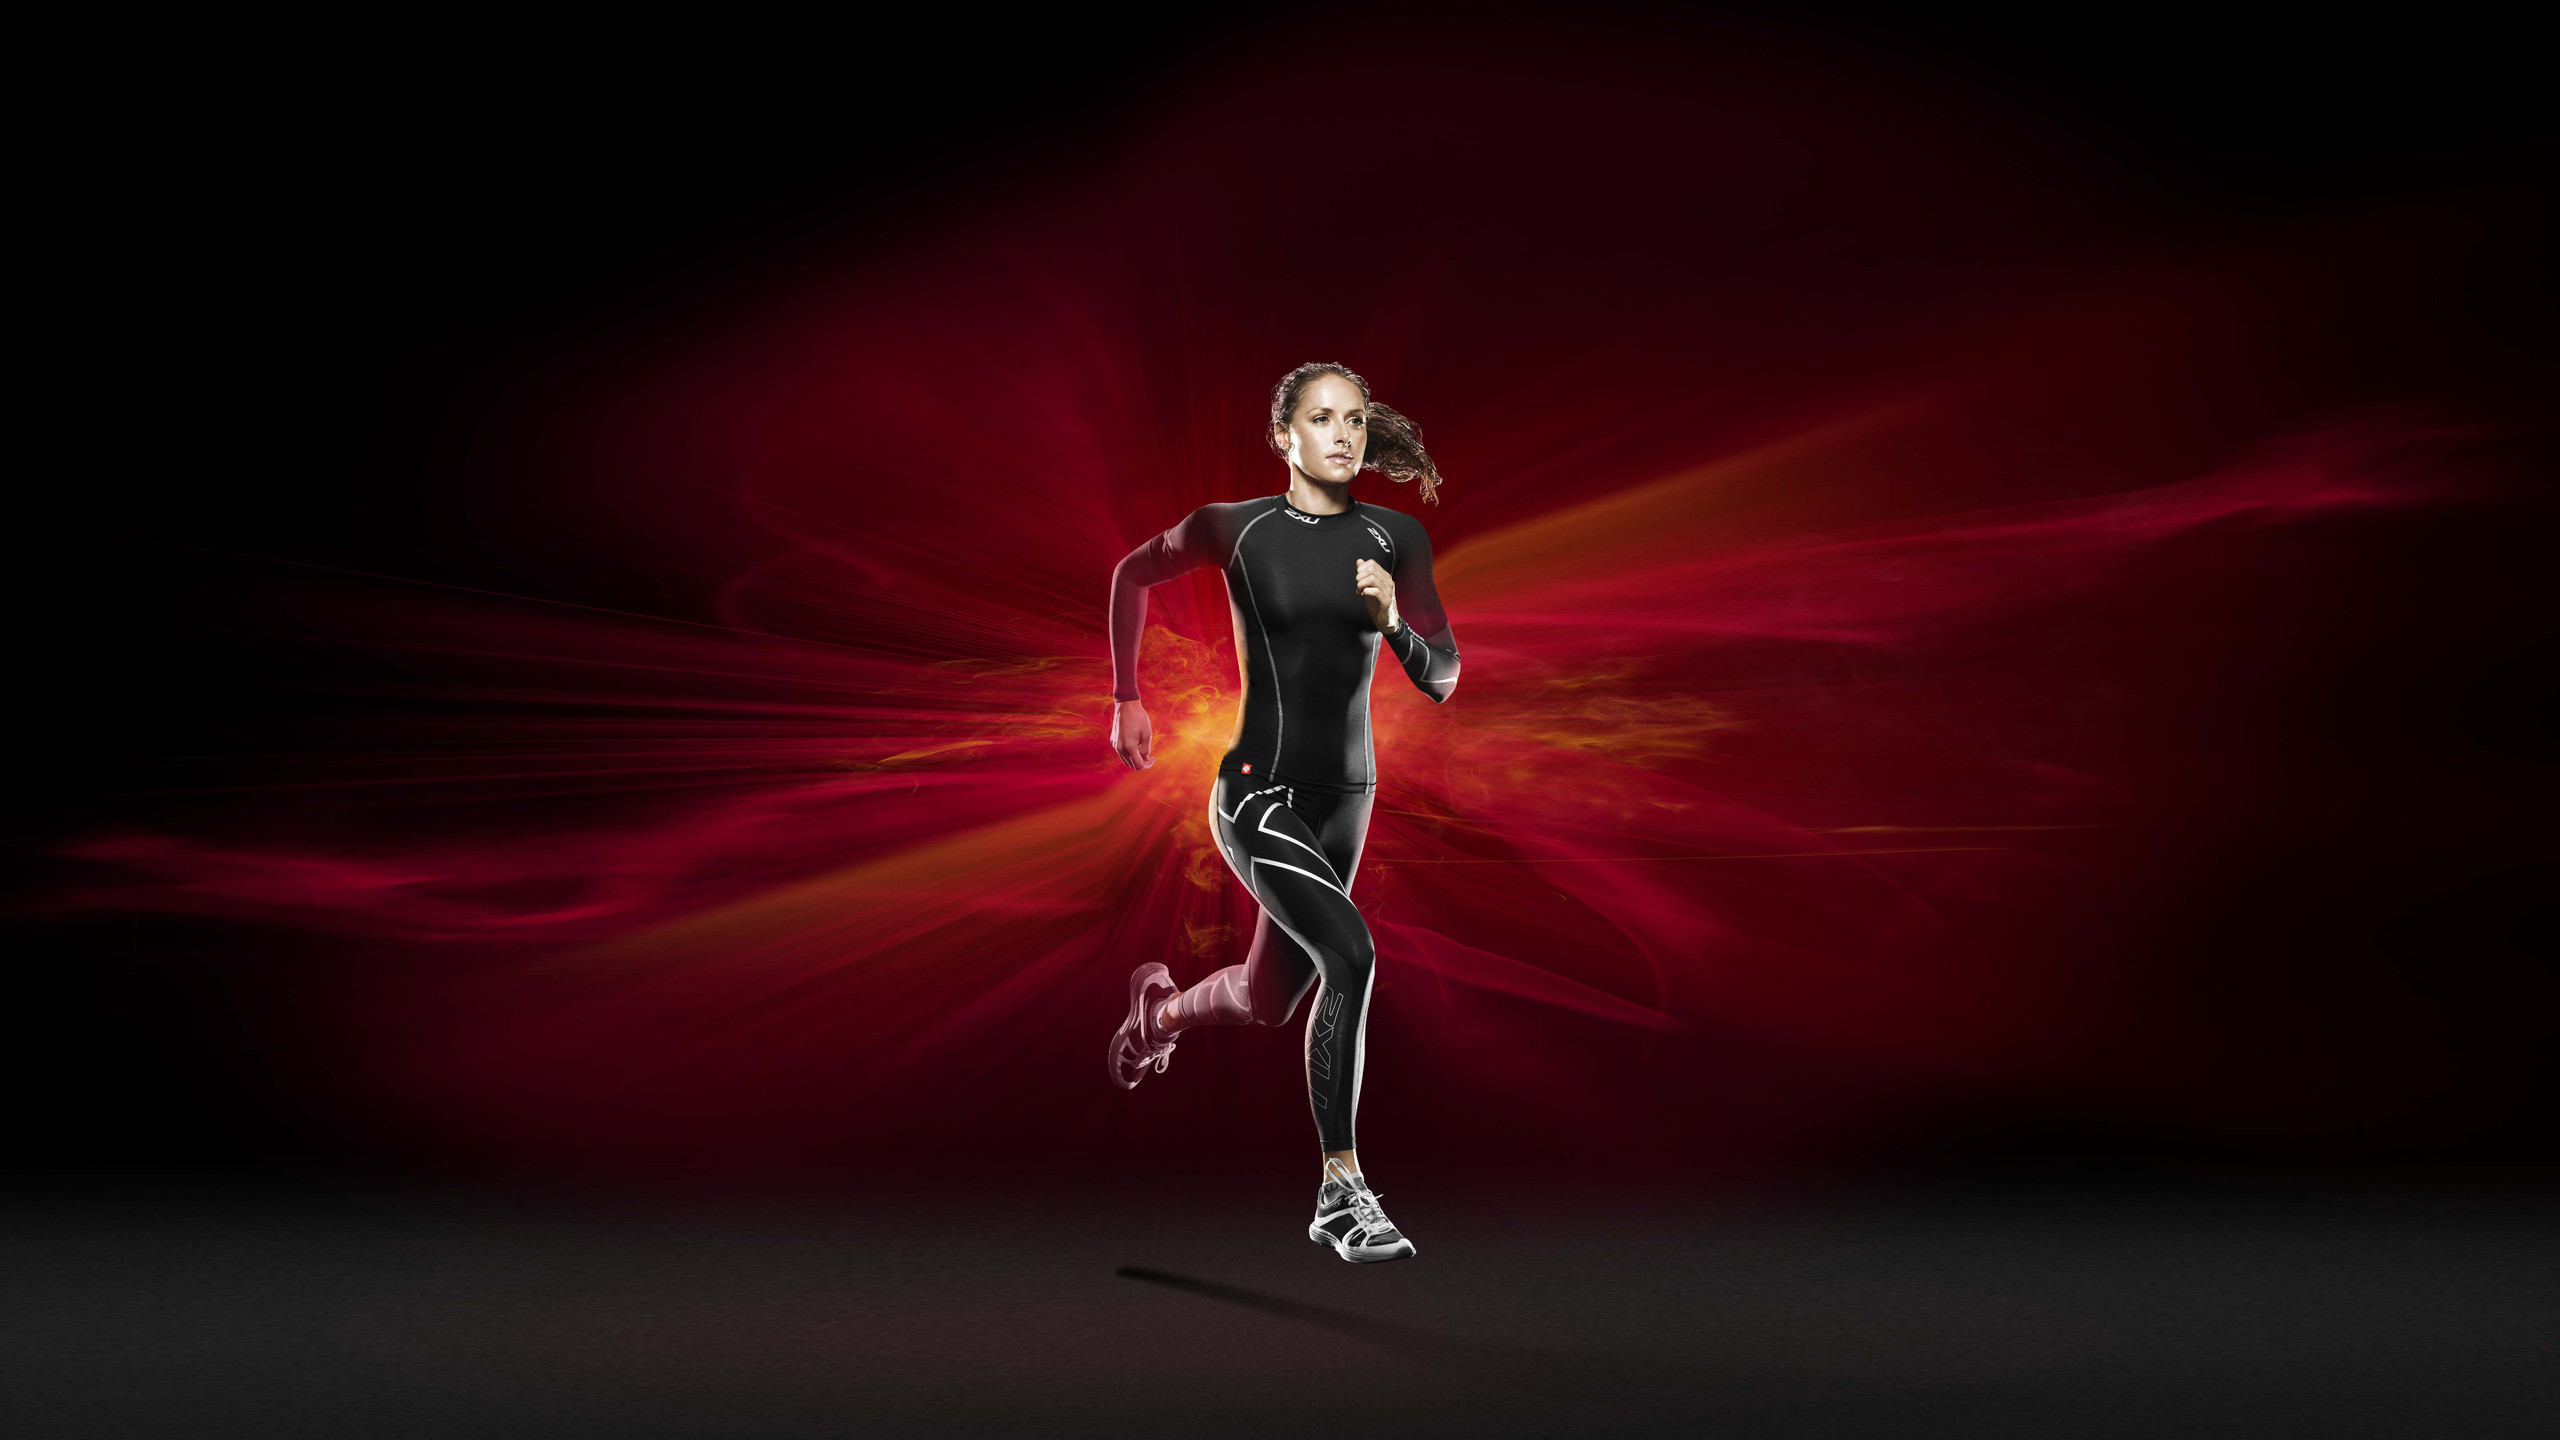 Sexy sport girl wallpaper wallpapers for free download about .